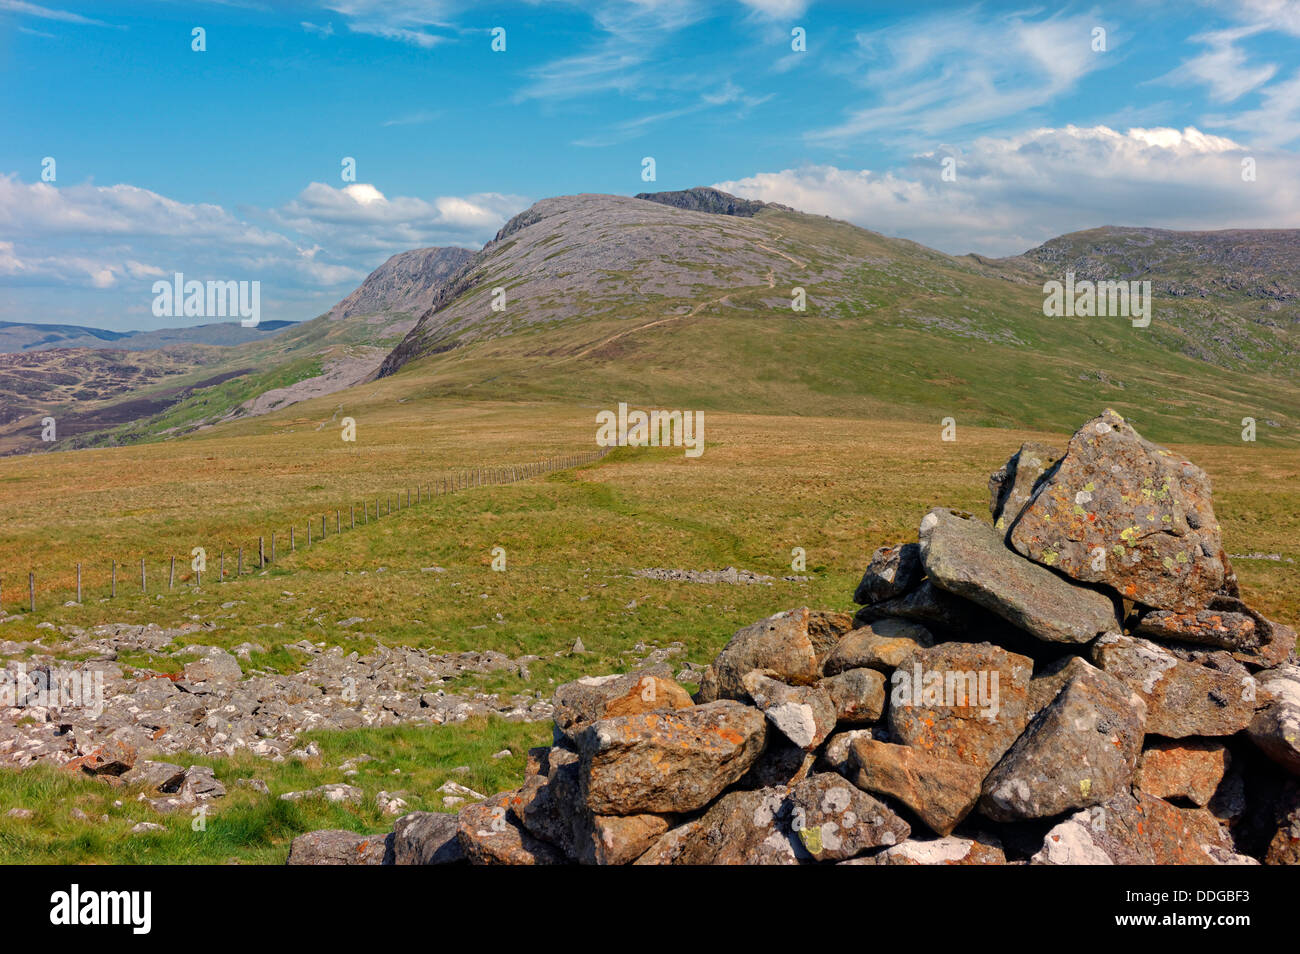 A view of Cader Idris, showing the pony path rising up to the summit, with a cairn of rocks in the near right foreground. - Stock Image